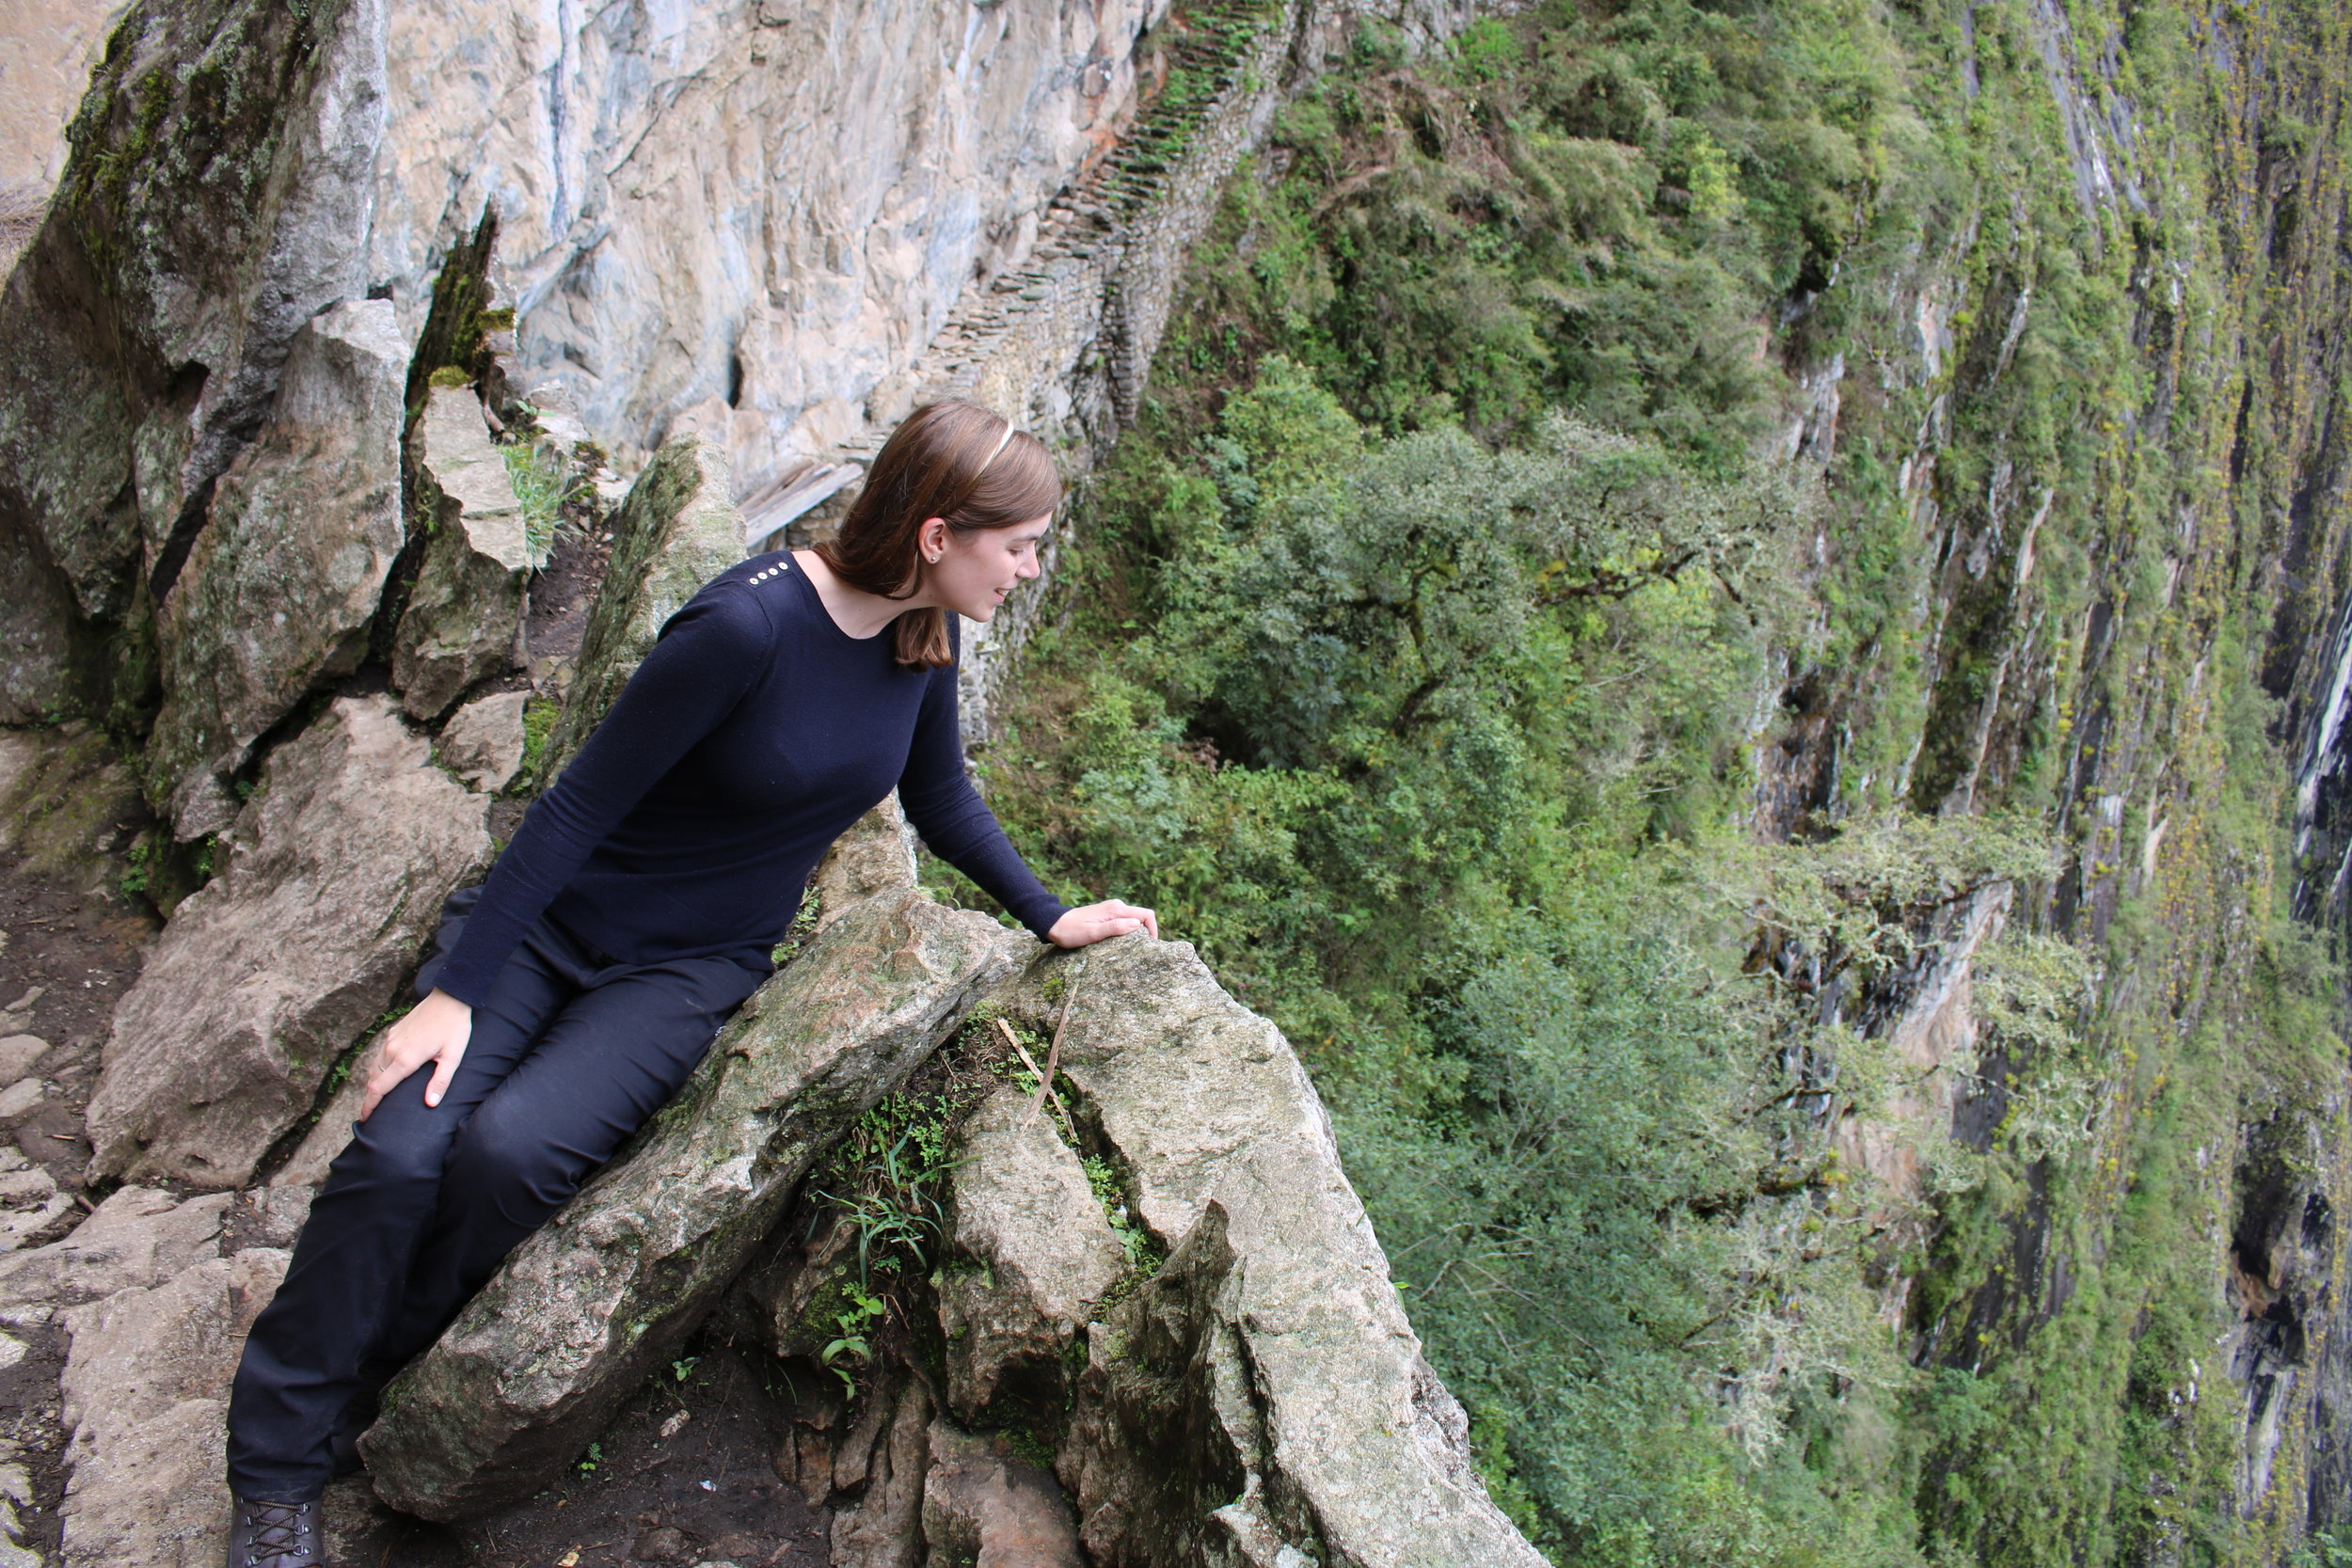 Facing Fears at the Inca Bridge, Machu Picchu, Peru